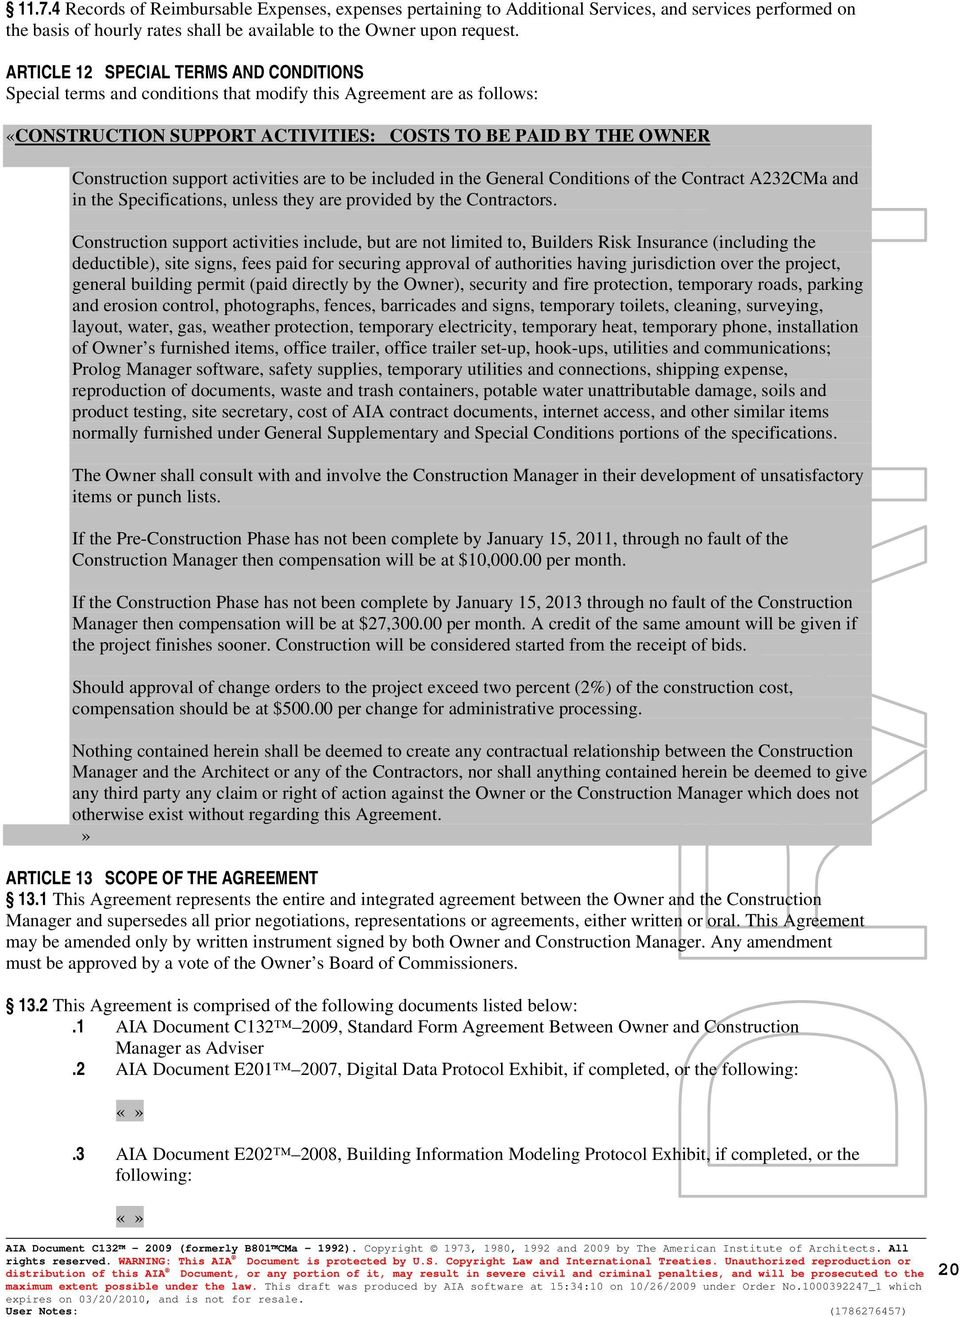 Aia Document C132 Tm Pdf